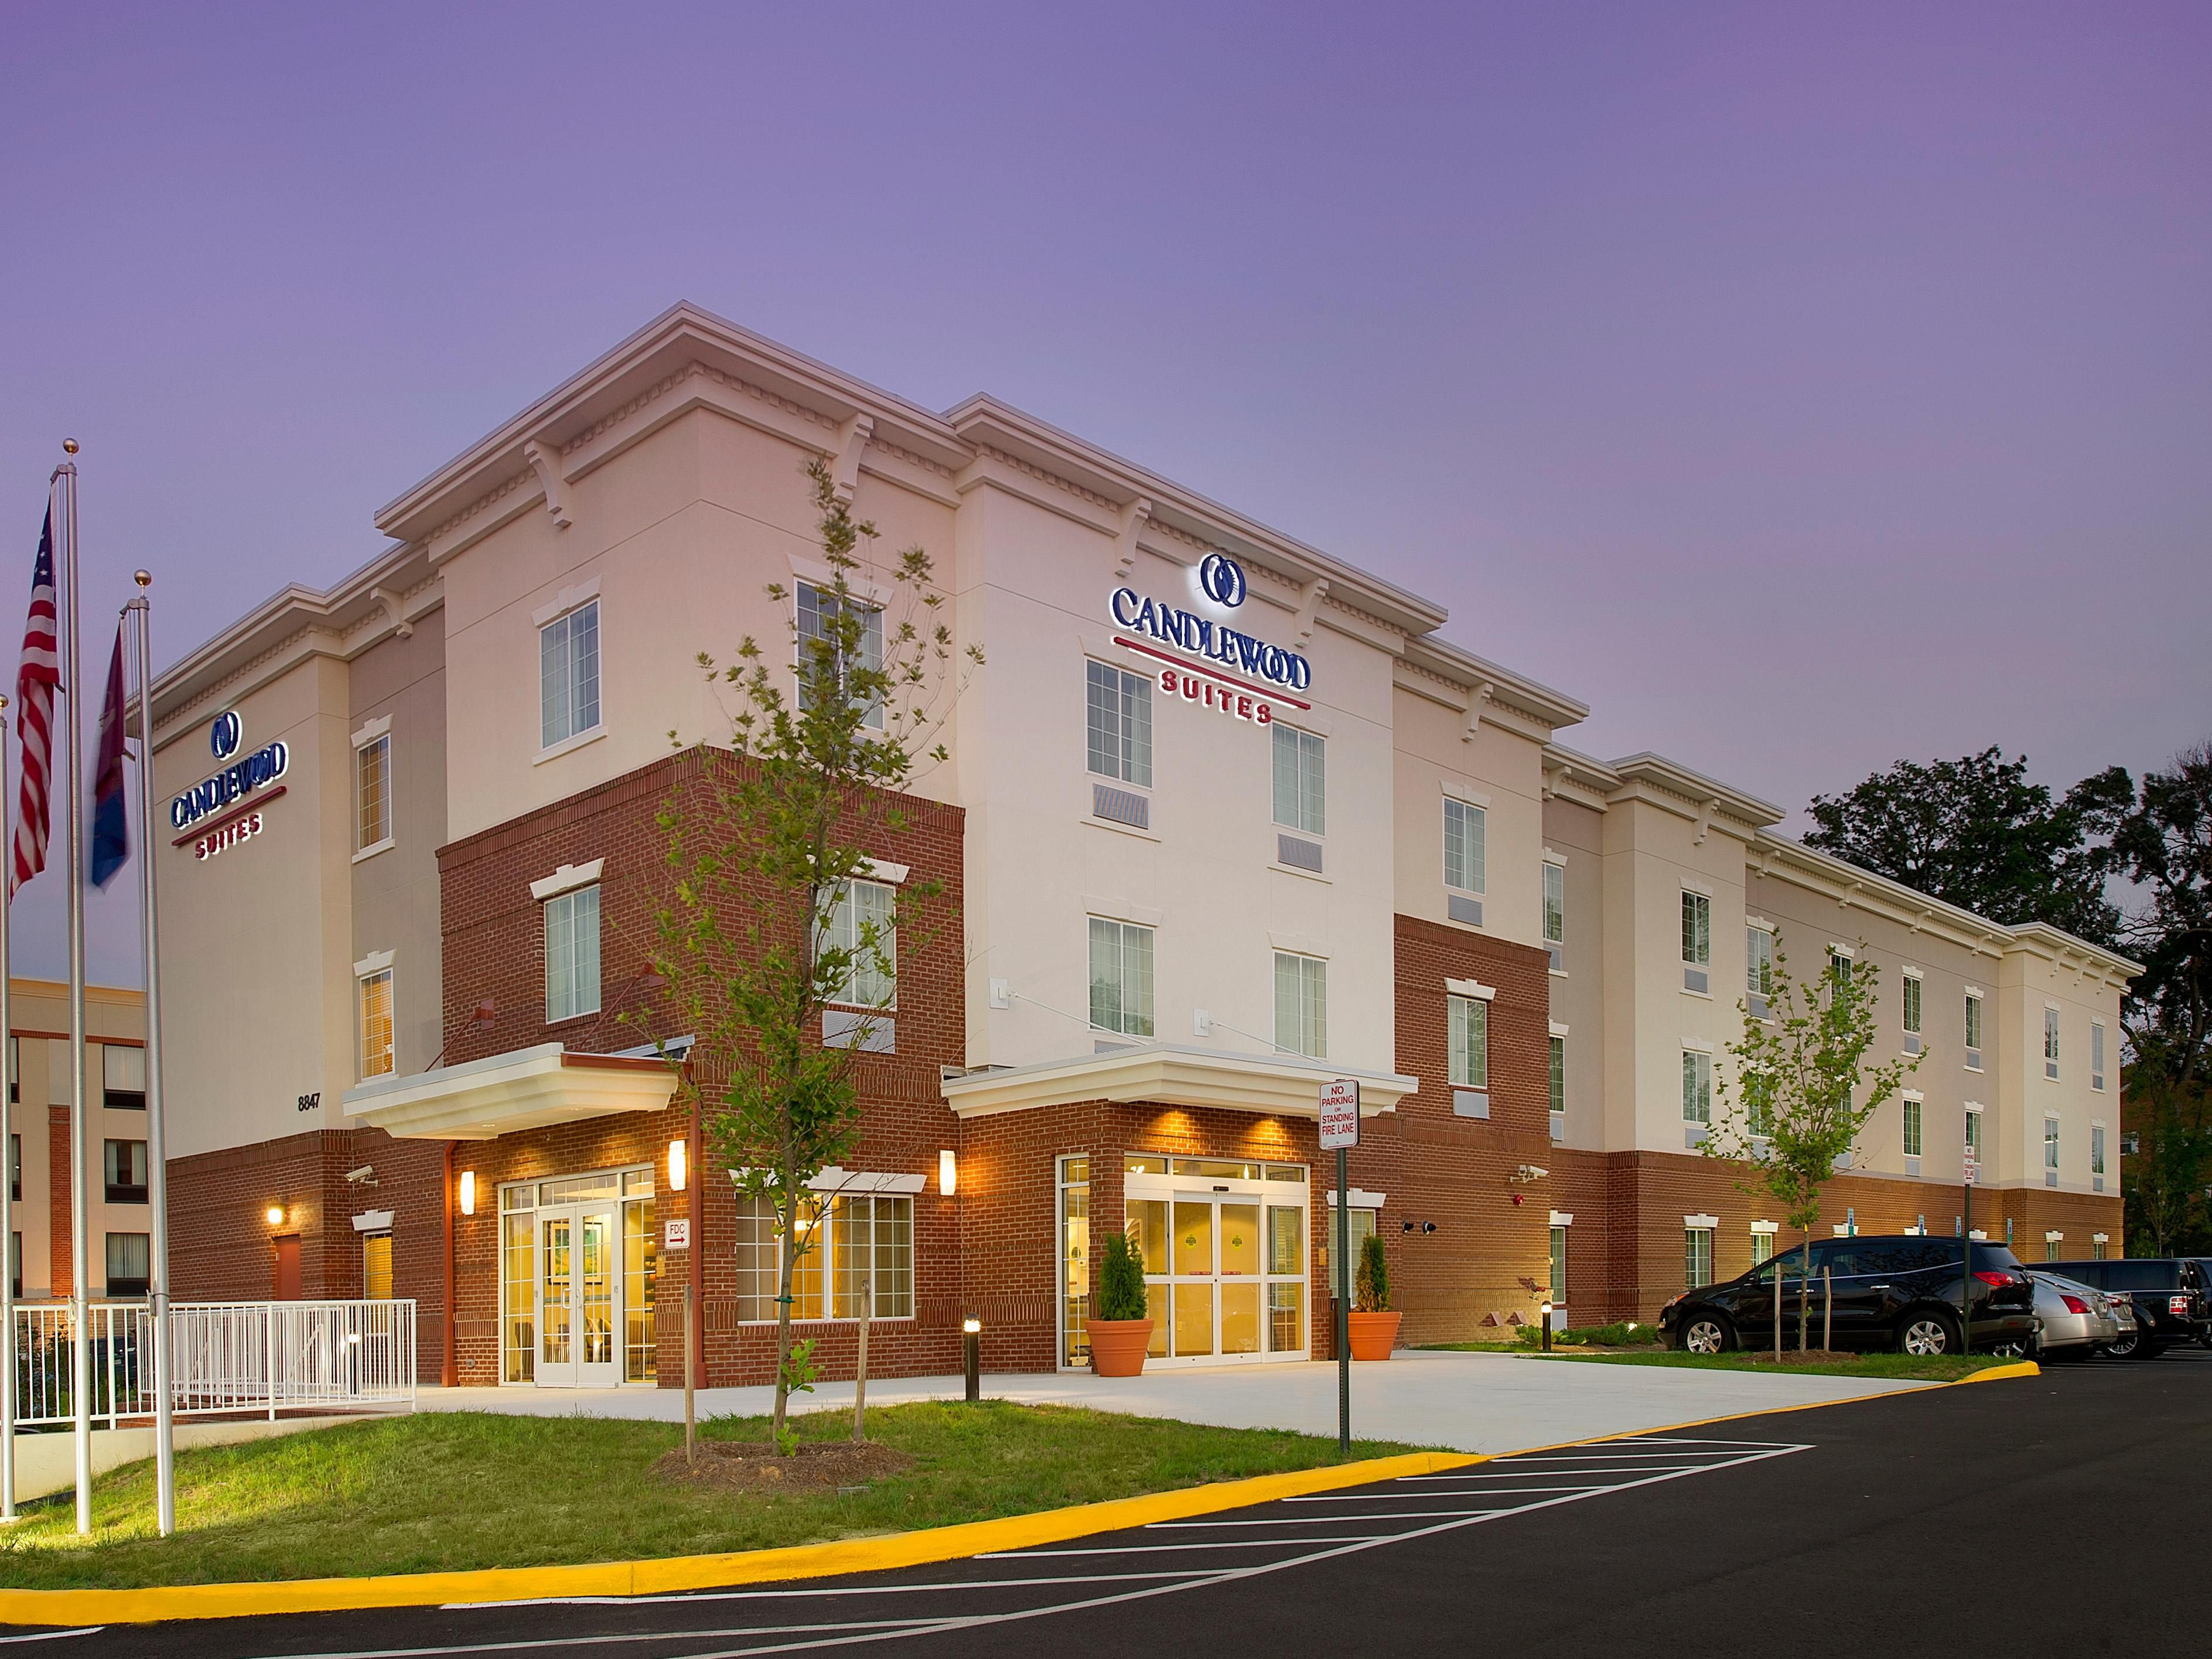 Alexandria Hotels Candlewood Suites Fort Belvoir Extended Stay Hotel In Virginia